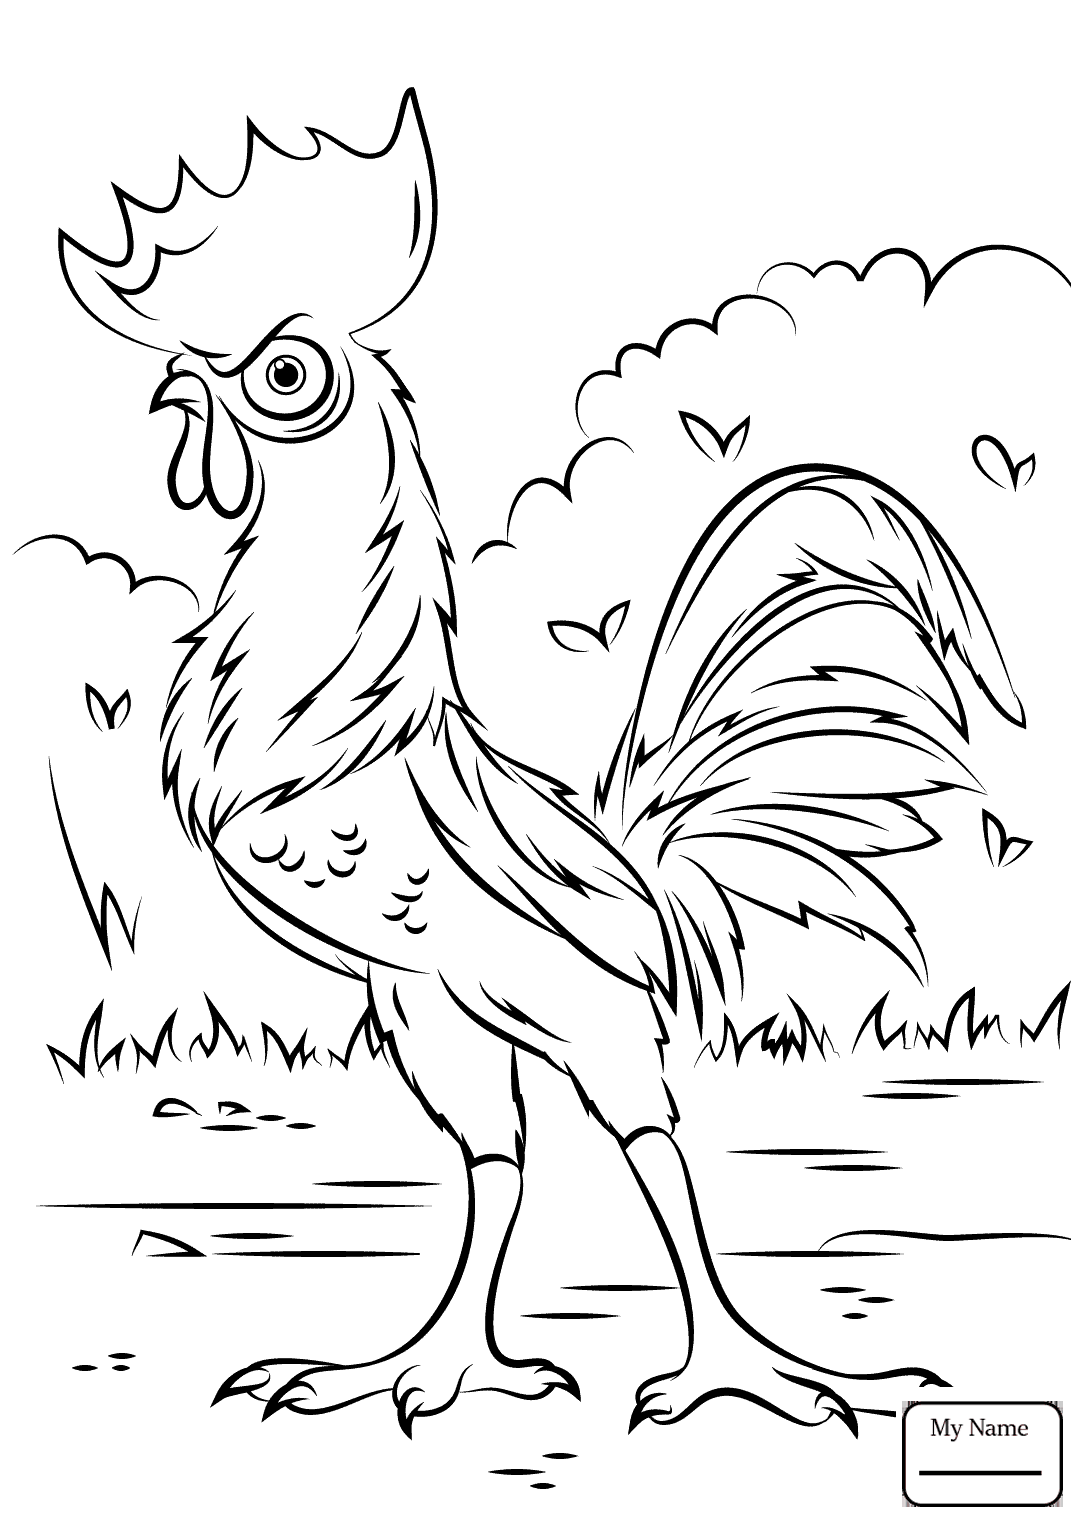 1081x1530 Smartness Ideas Rooster Coloring Page Good Morning Mr Pages Super